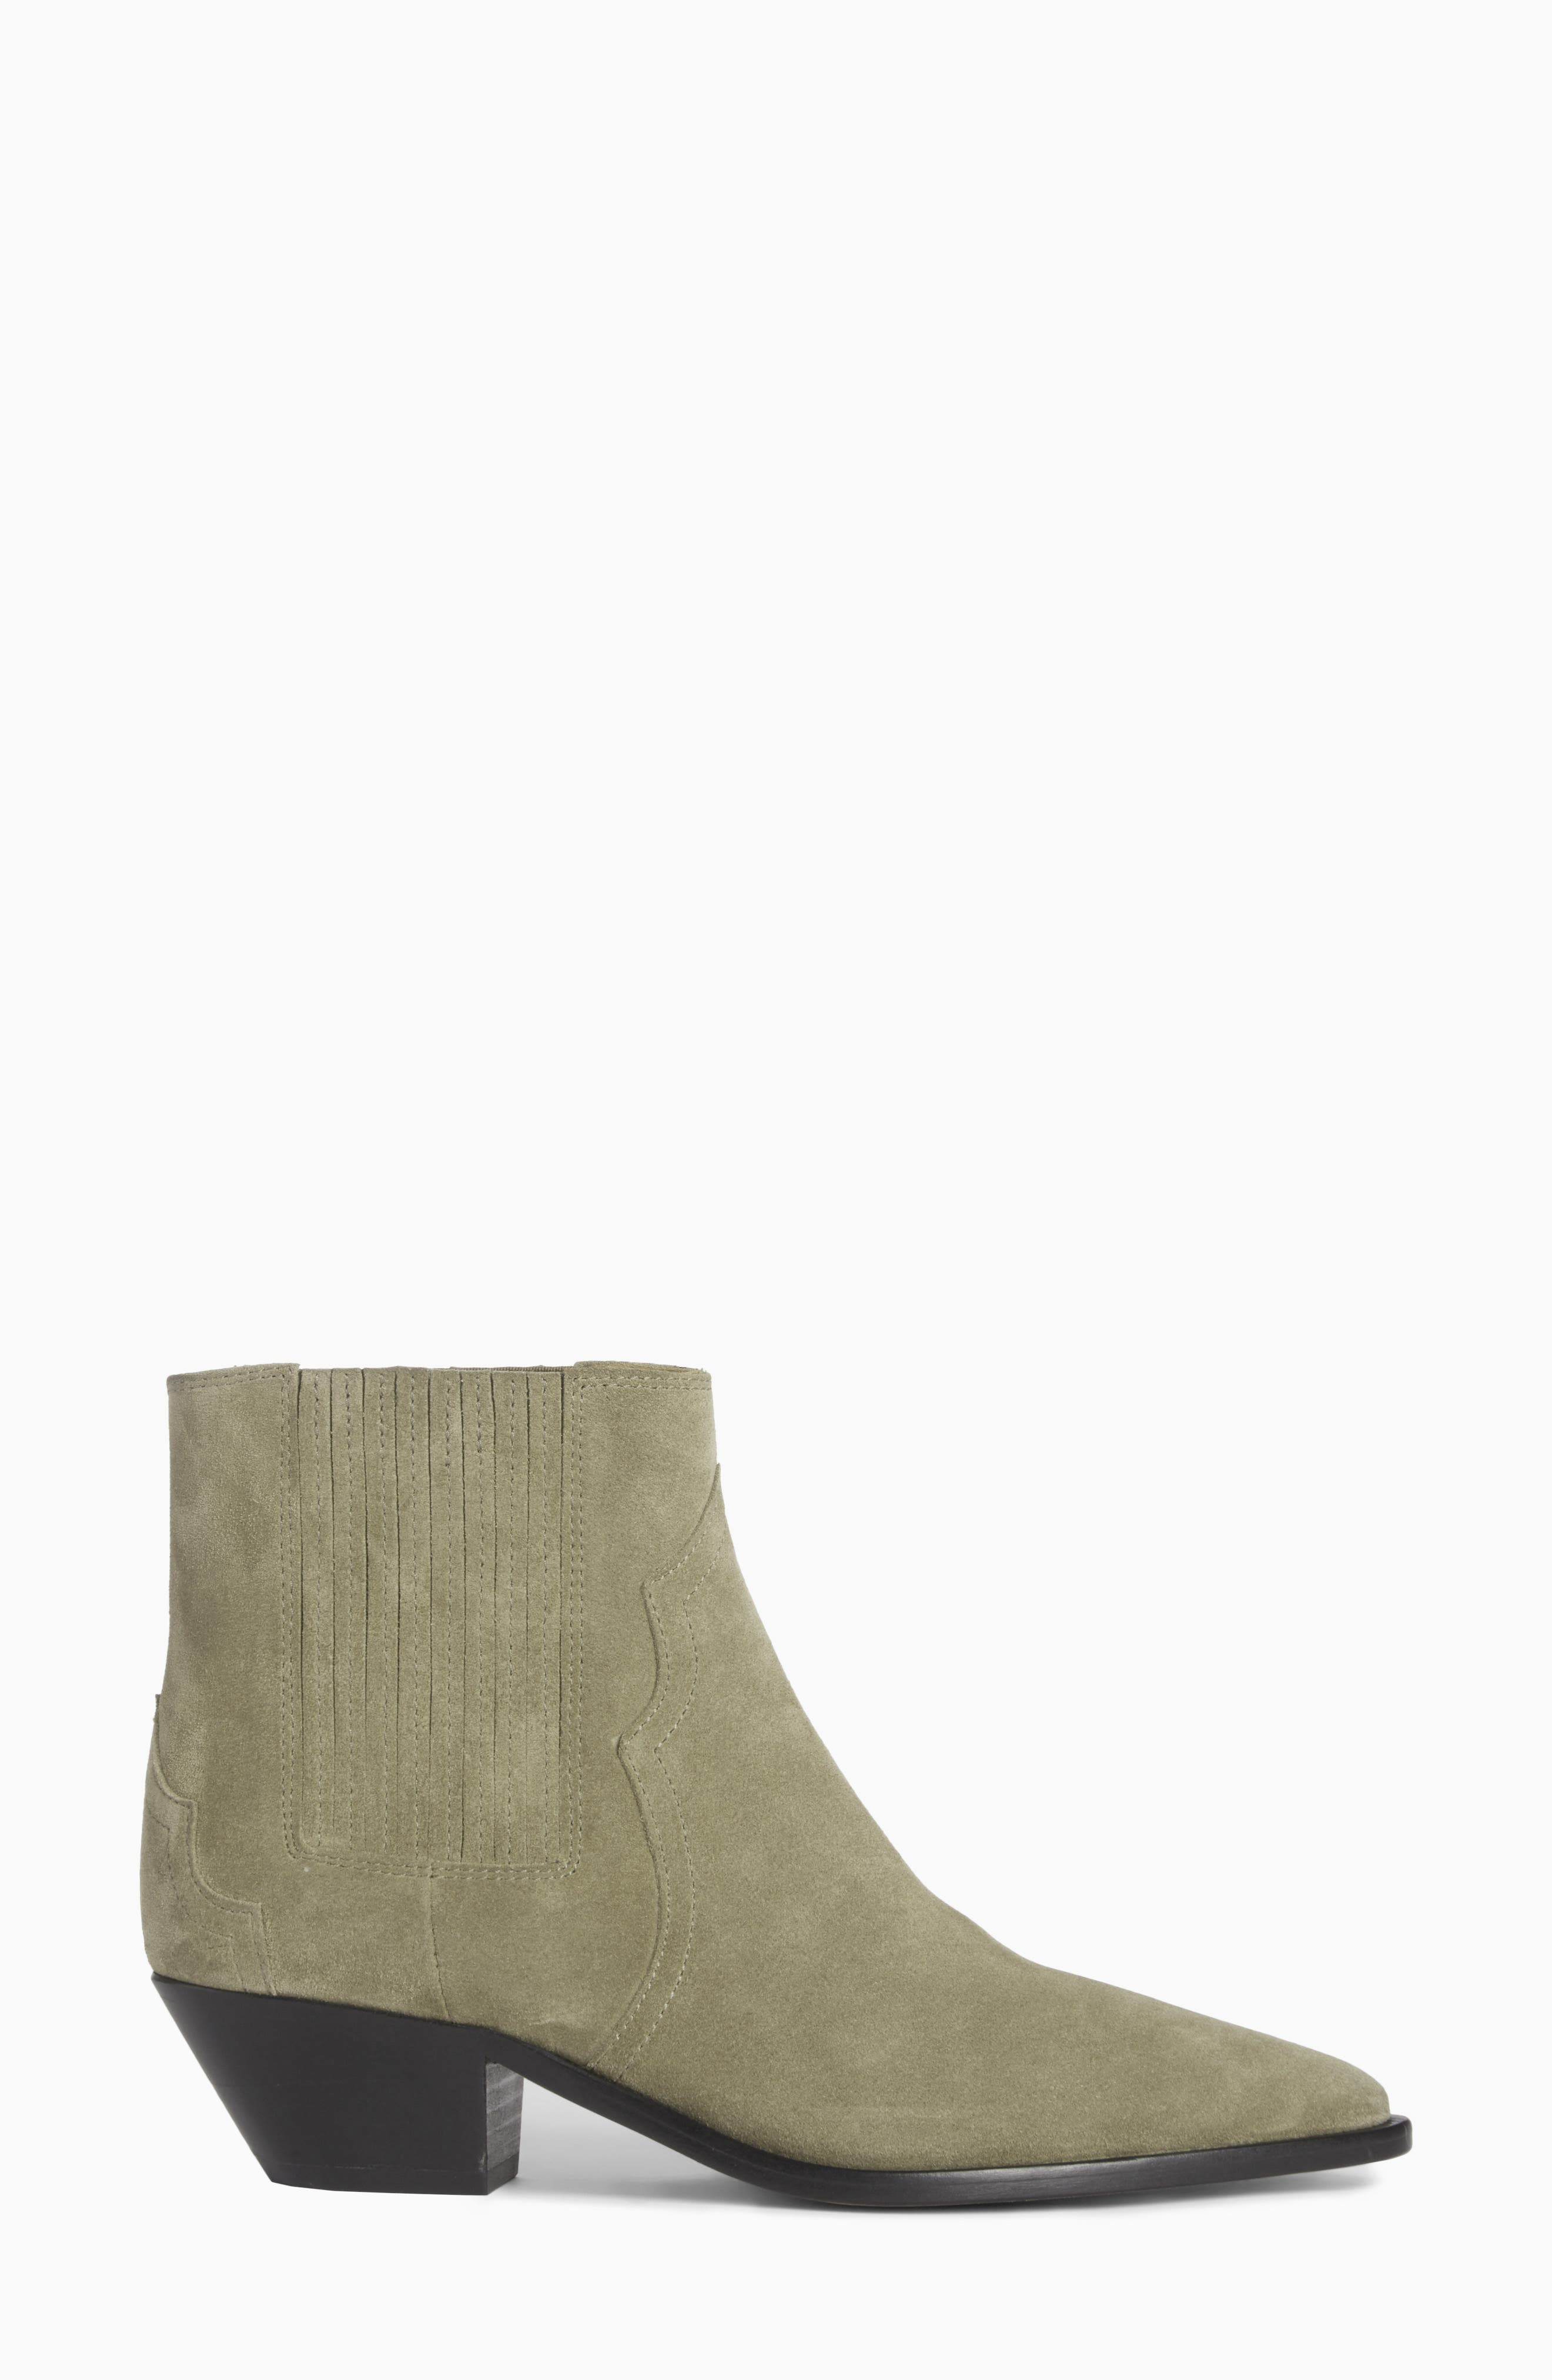 Derlyn Pointy Toe Boot,                             Alternate thumbnail 3, color,                             300